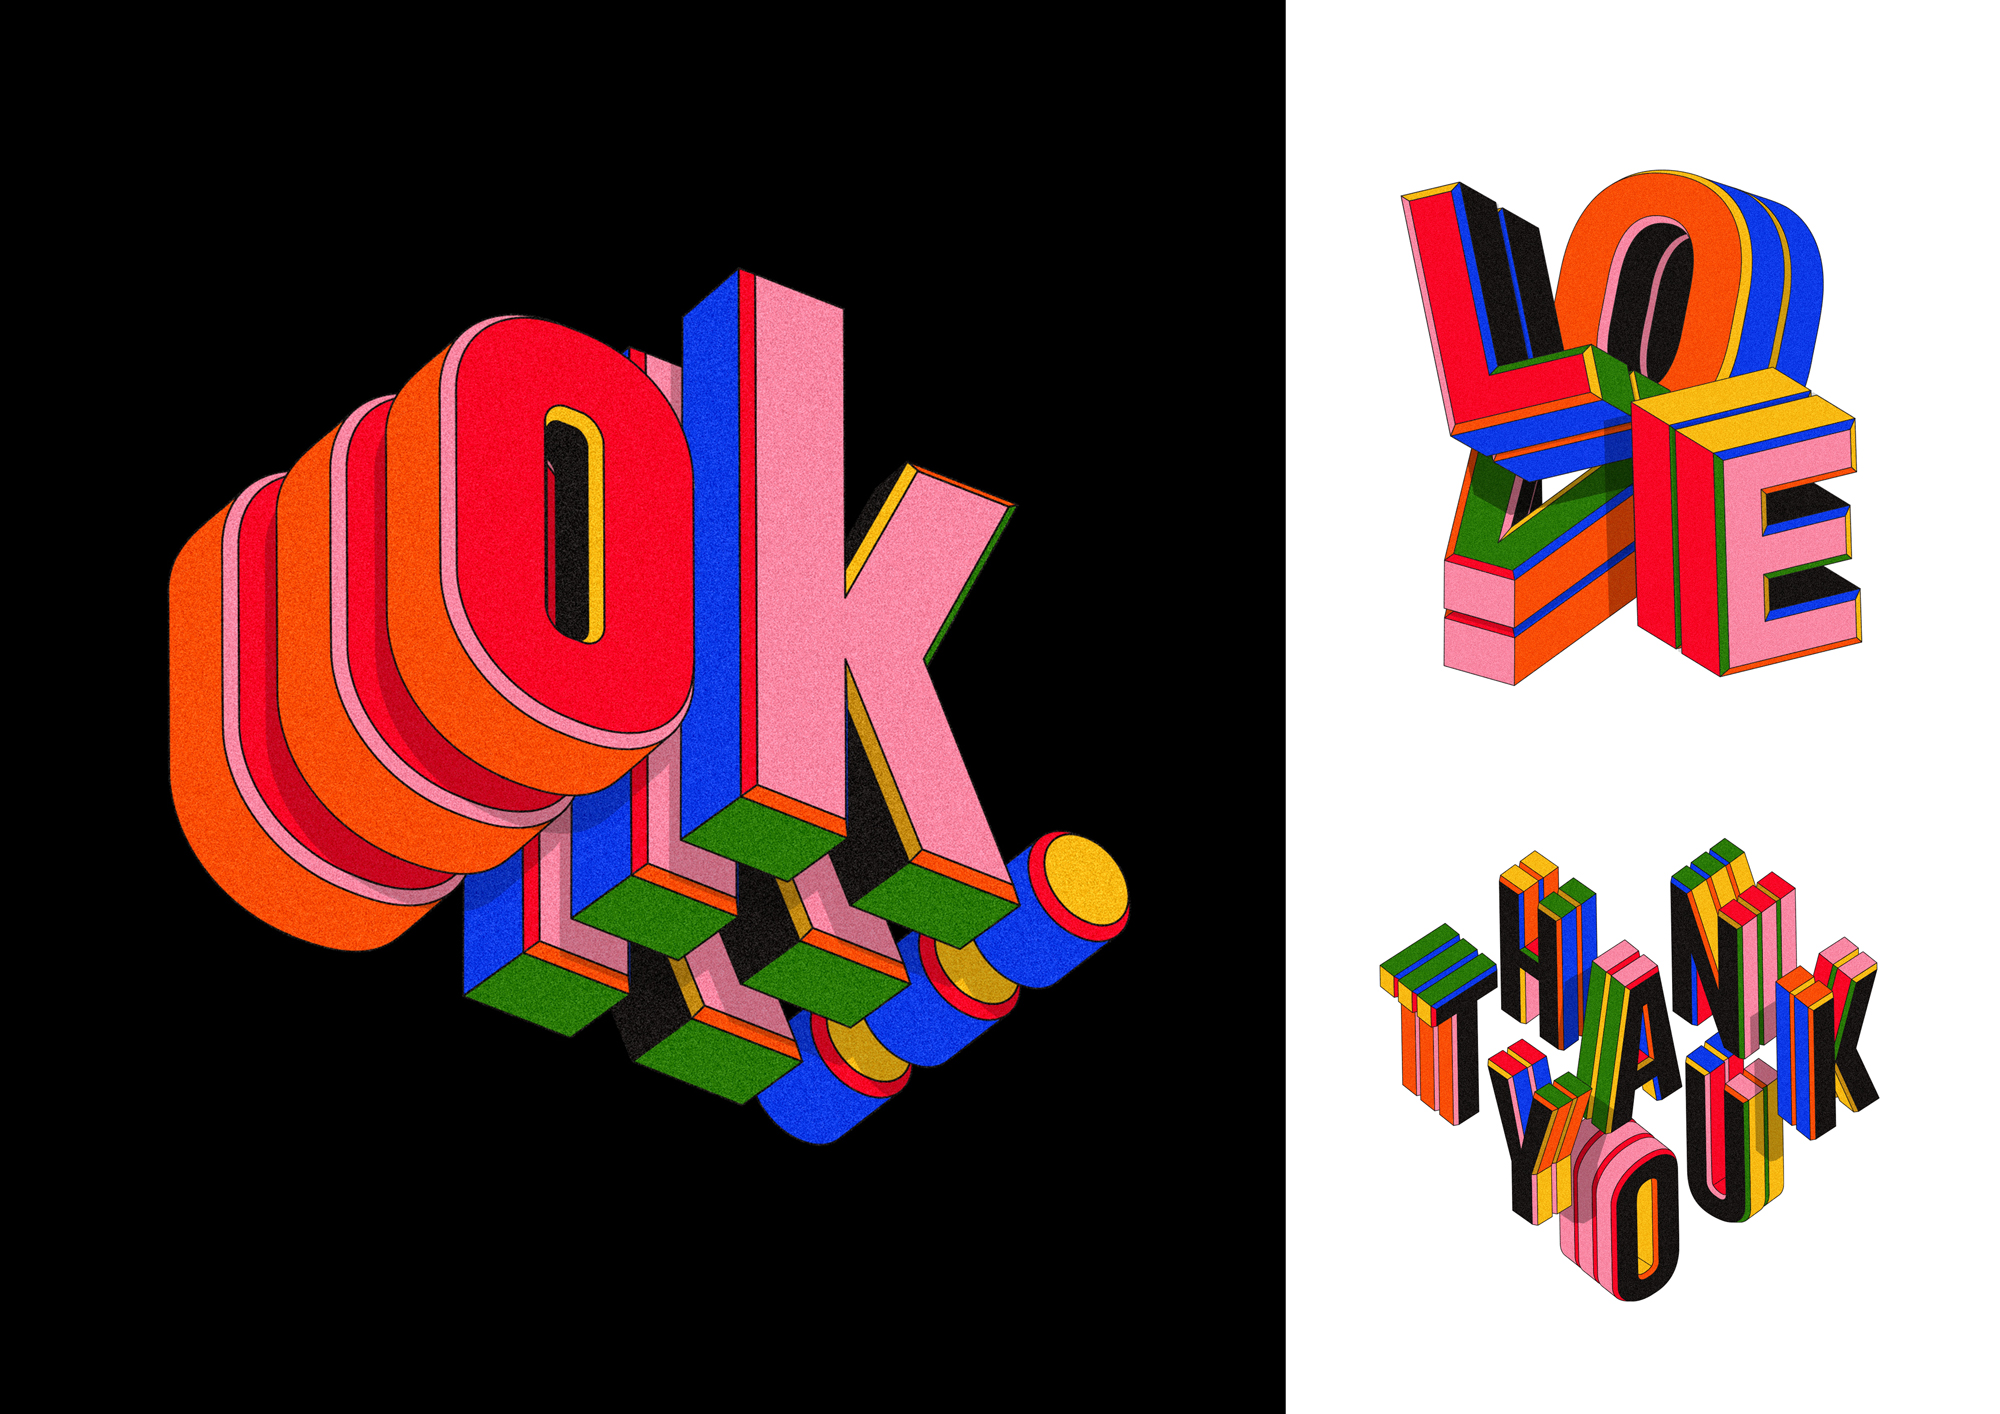 typeface design by Andrew Footit